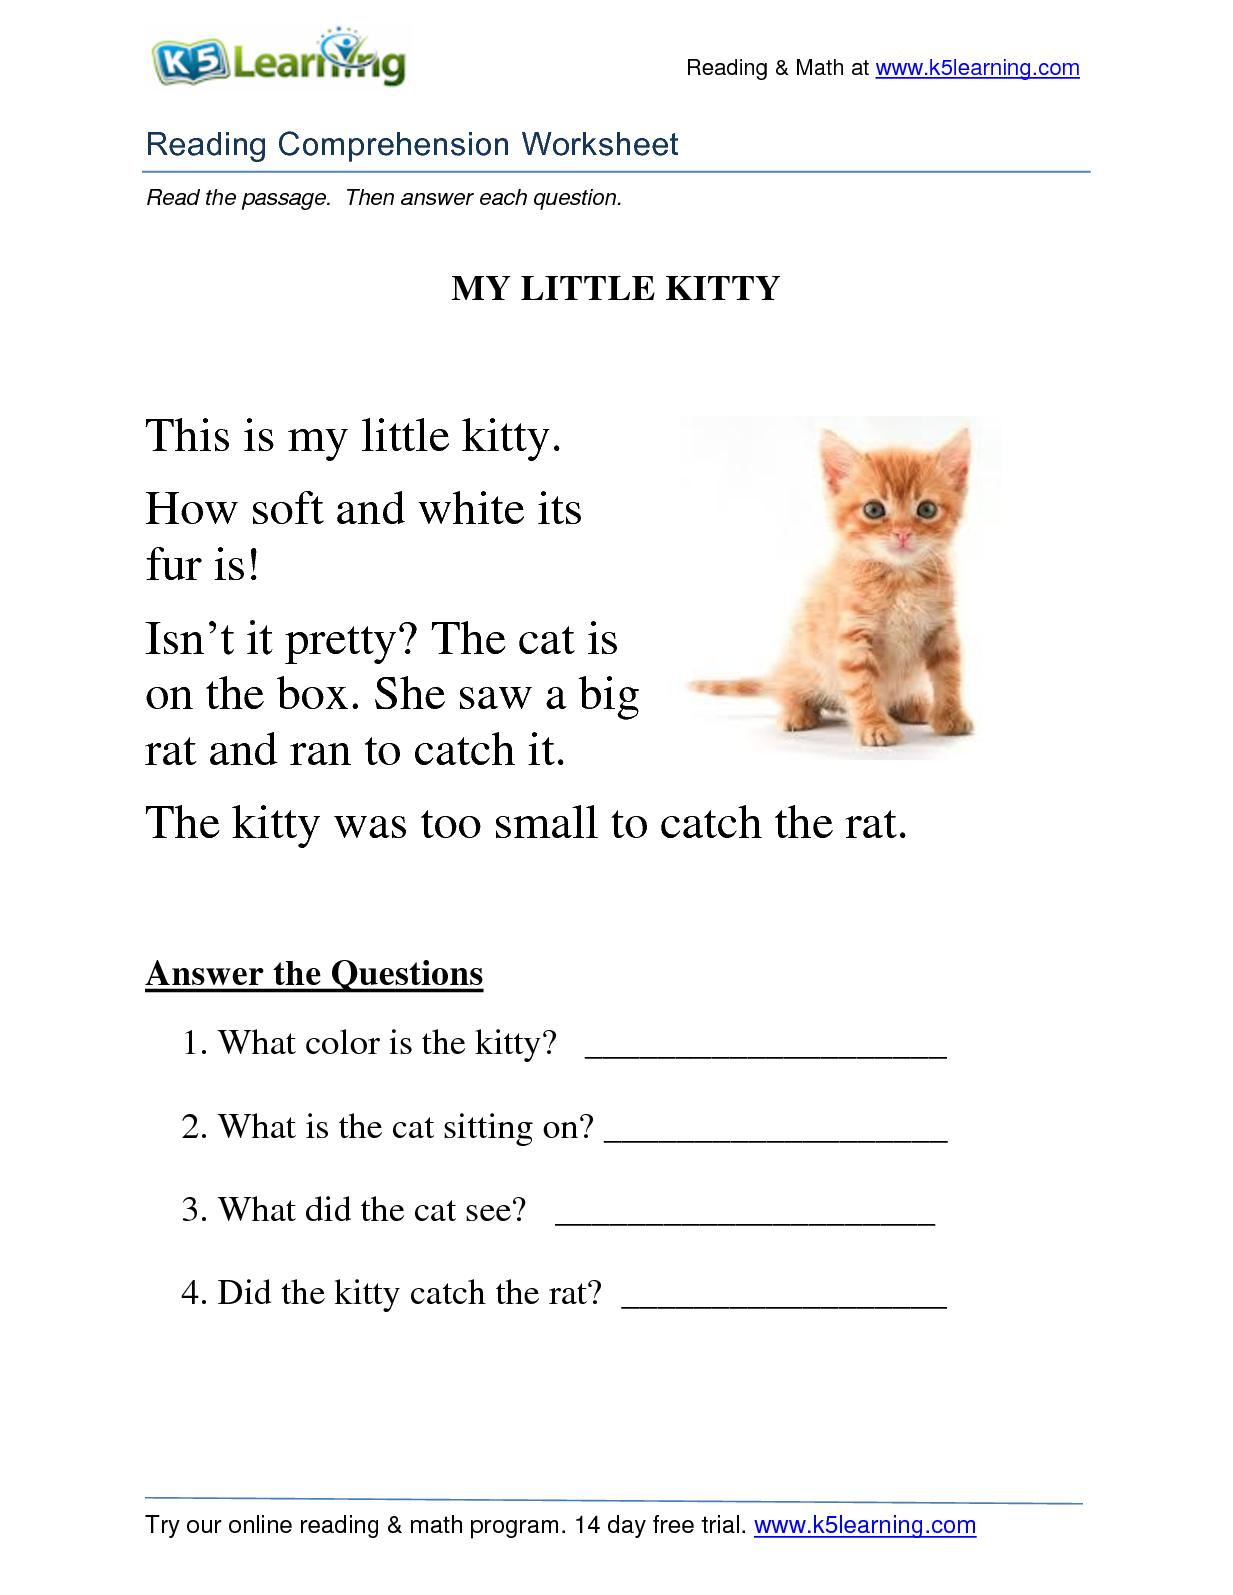 Calaméo Reading Prehension Worksheet Grade 1 Kitty